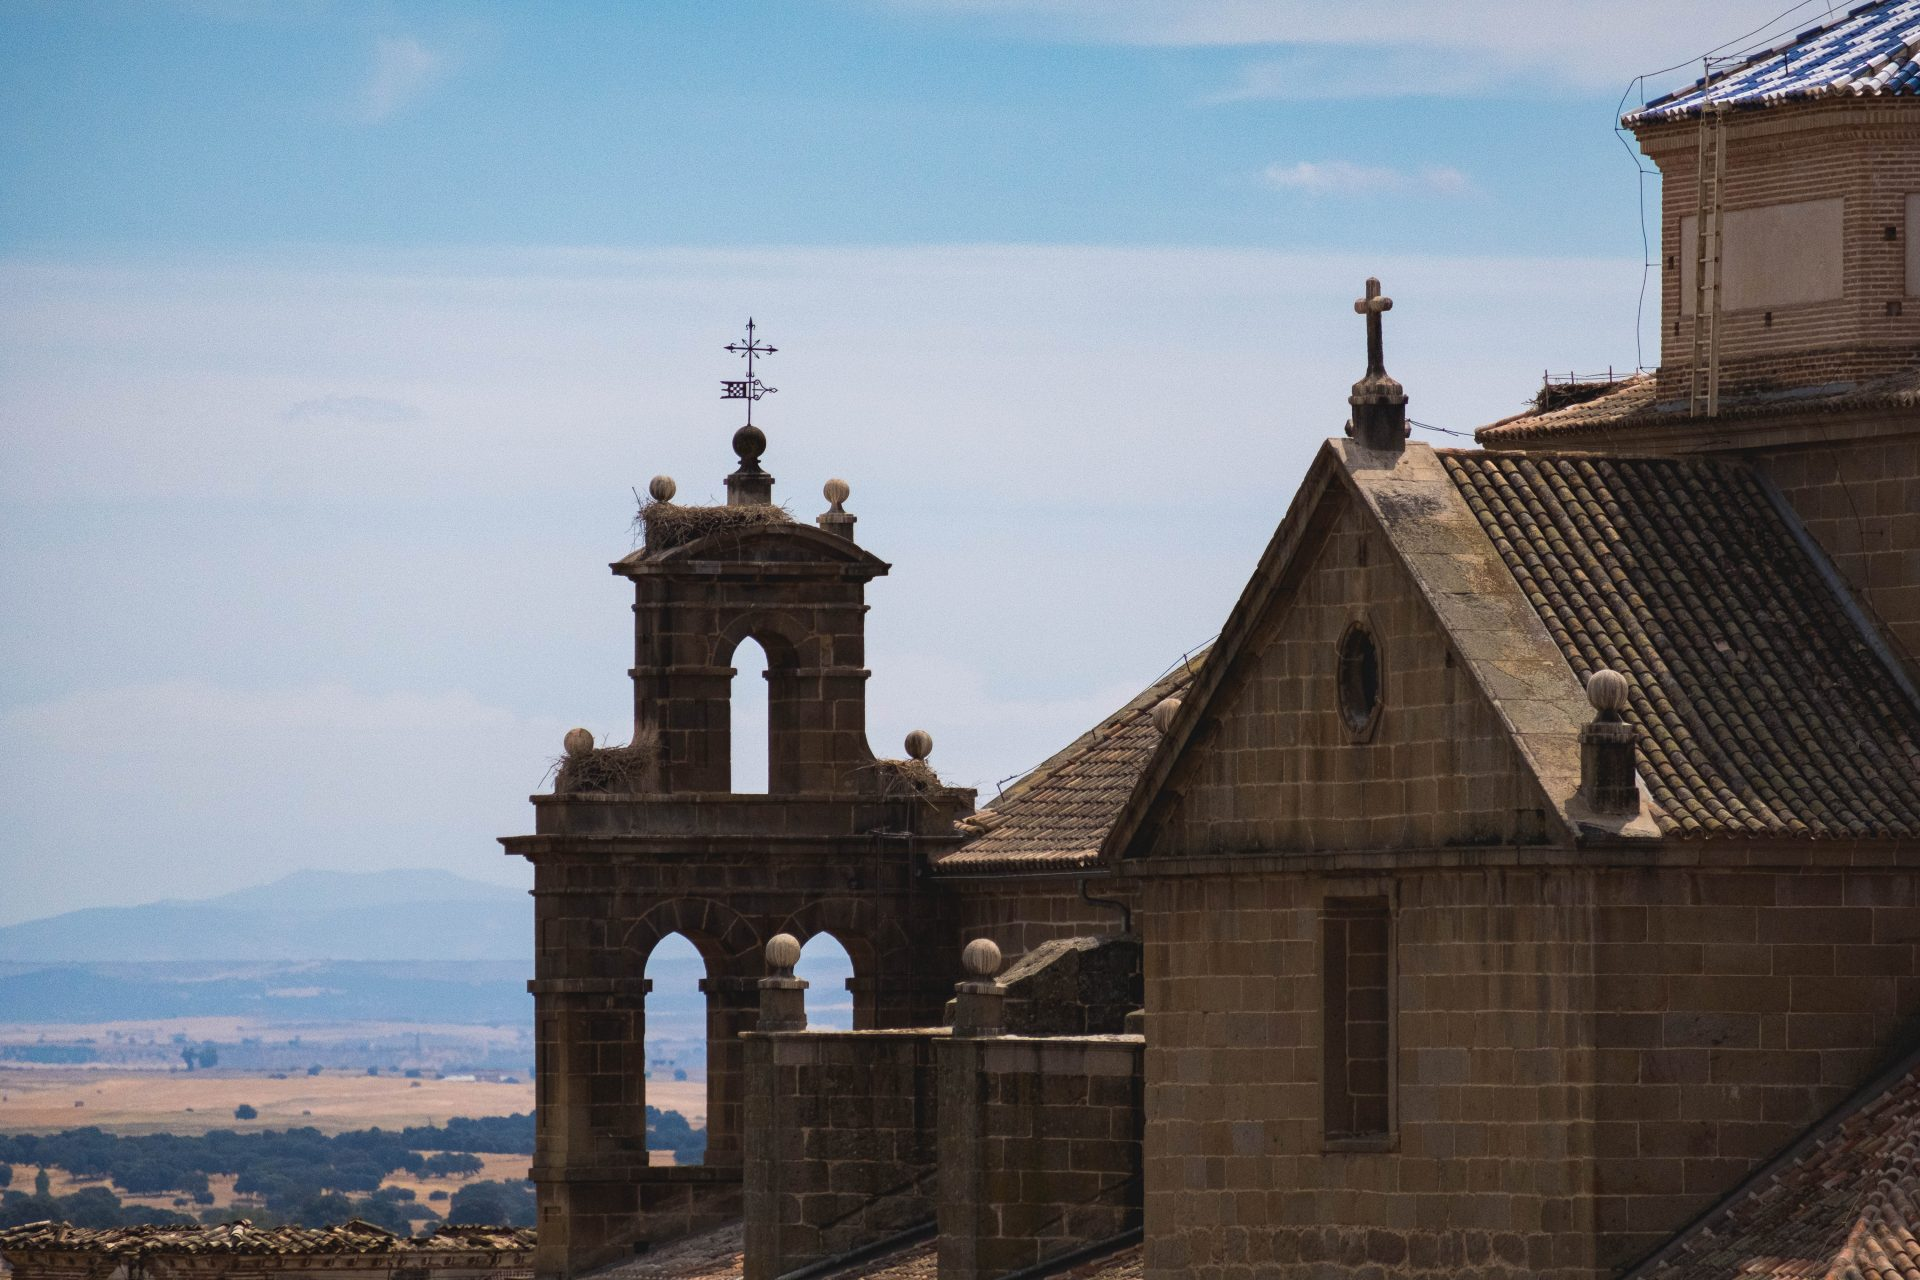 Closeup on a church in Oropesa photo by Jo Kassis